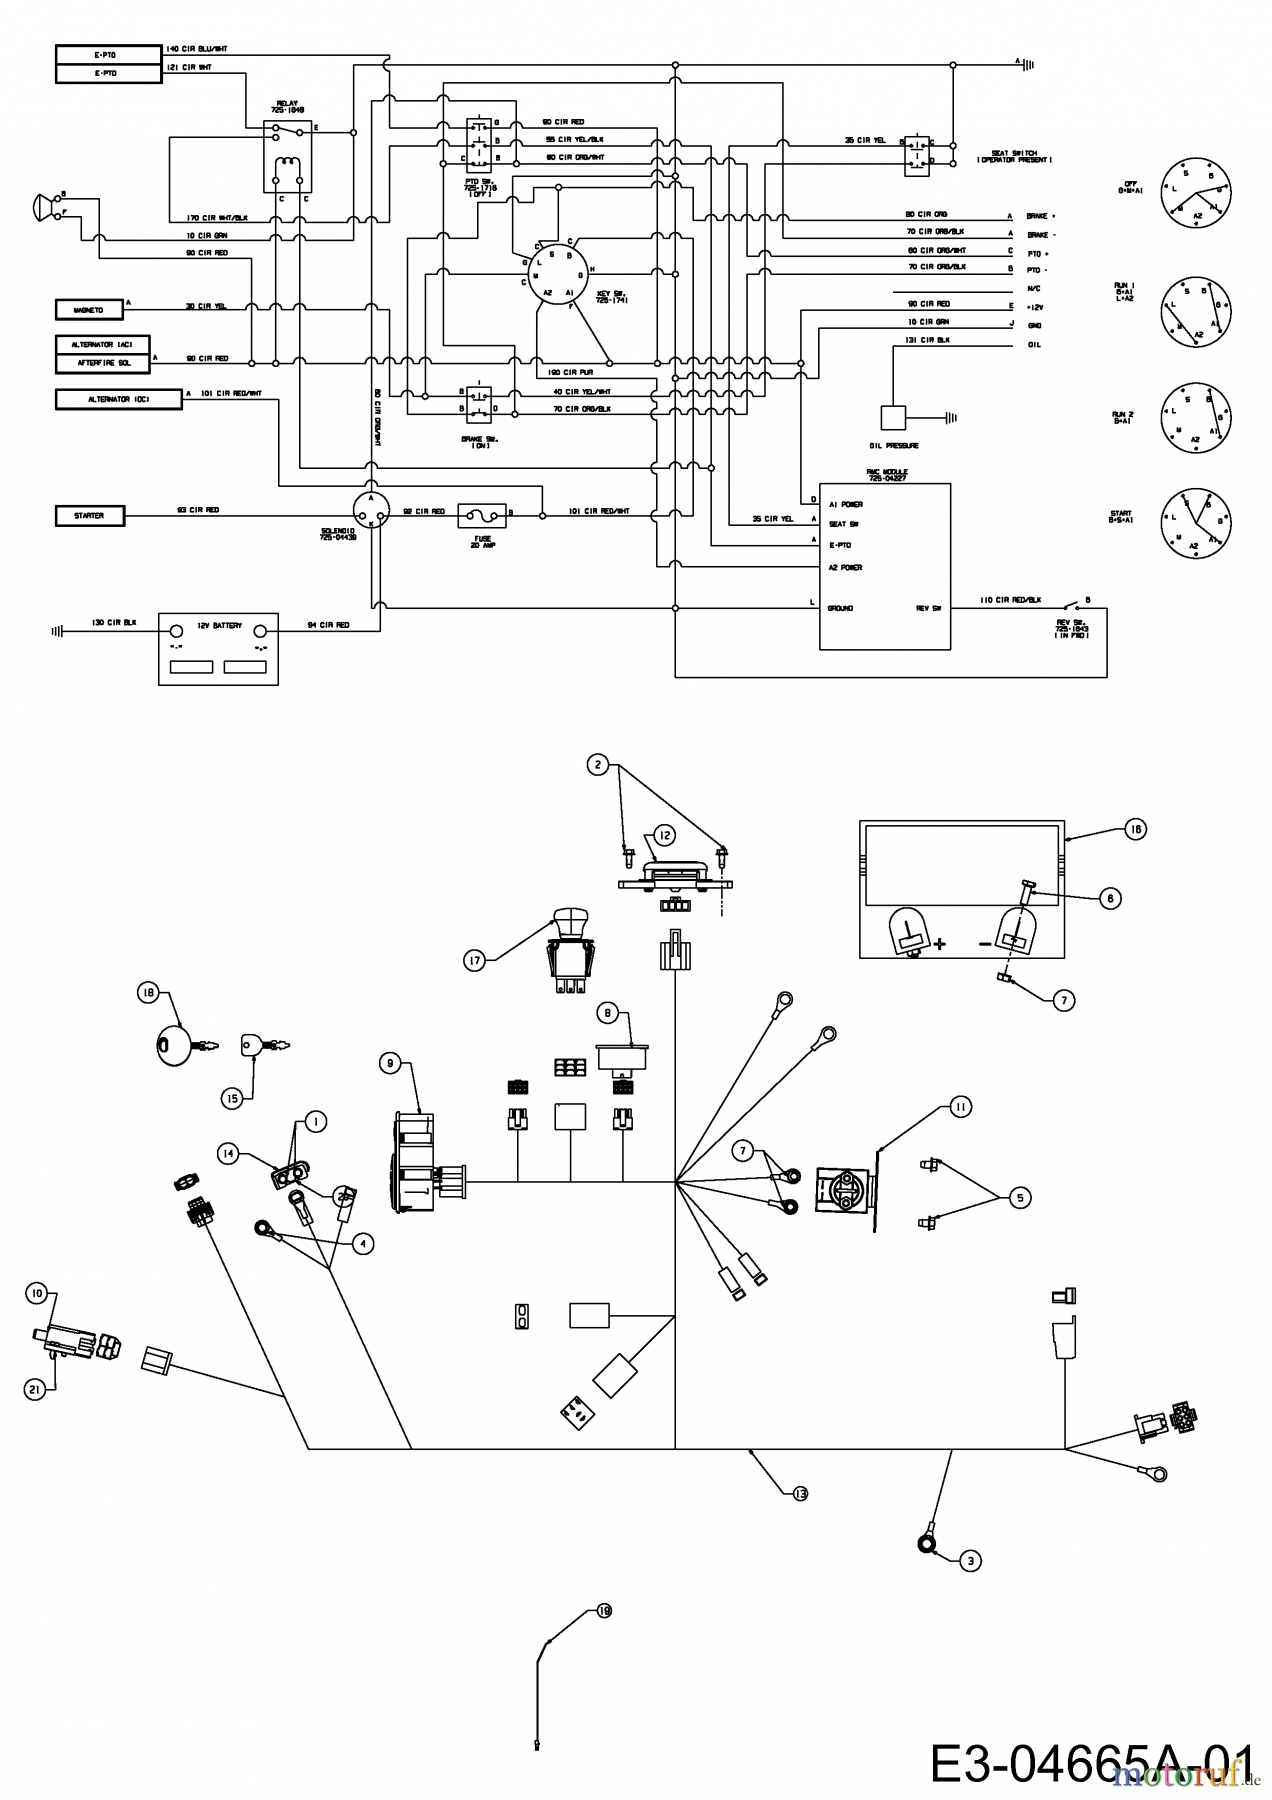 Tomberlin Solenoid Wiring Diagram